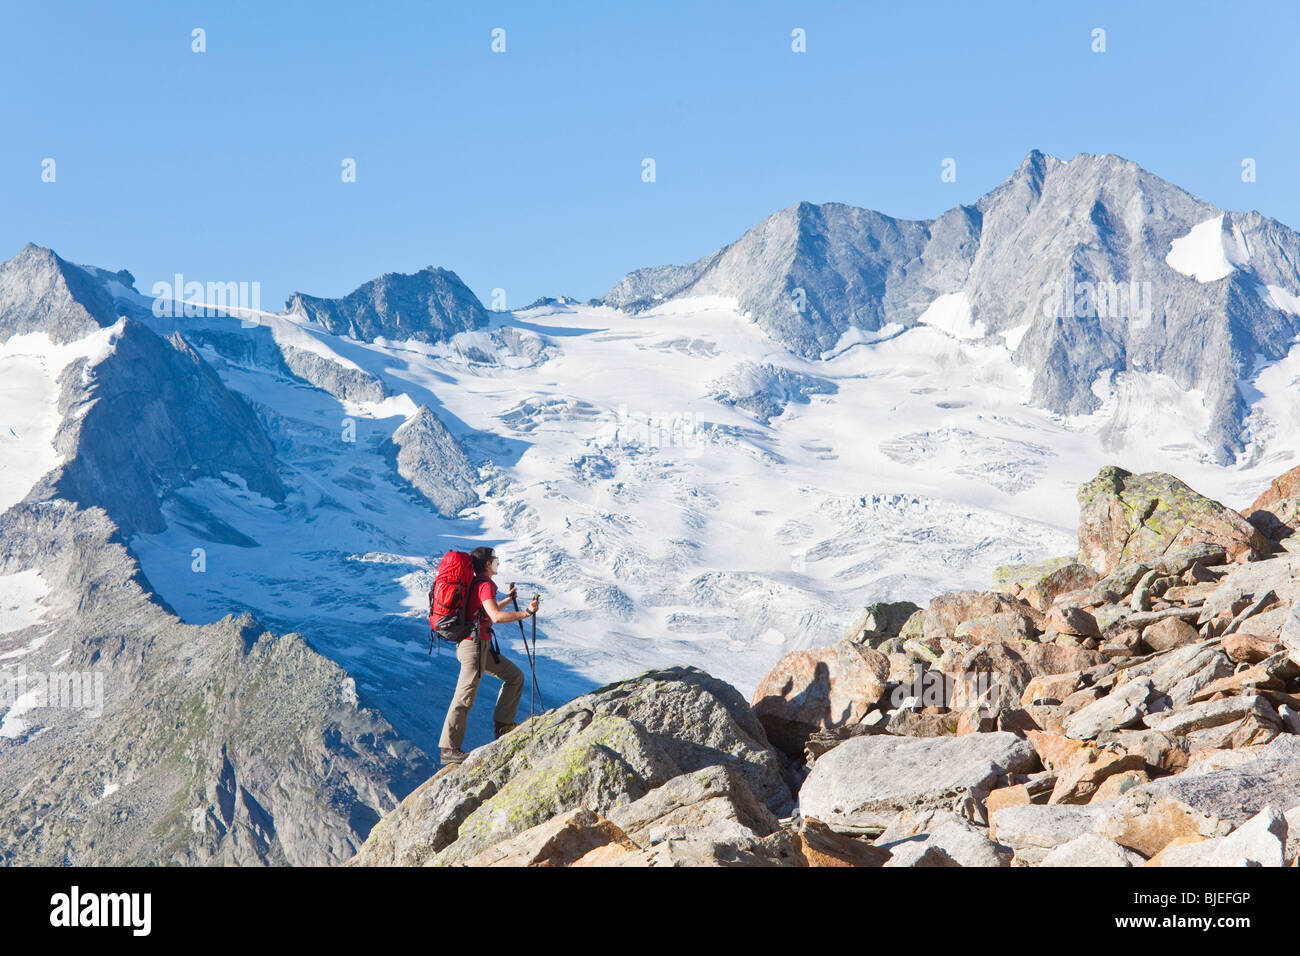 Mountain climber in Zillertal Alps, Tyrol, Austria, side view - Stock Image